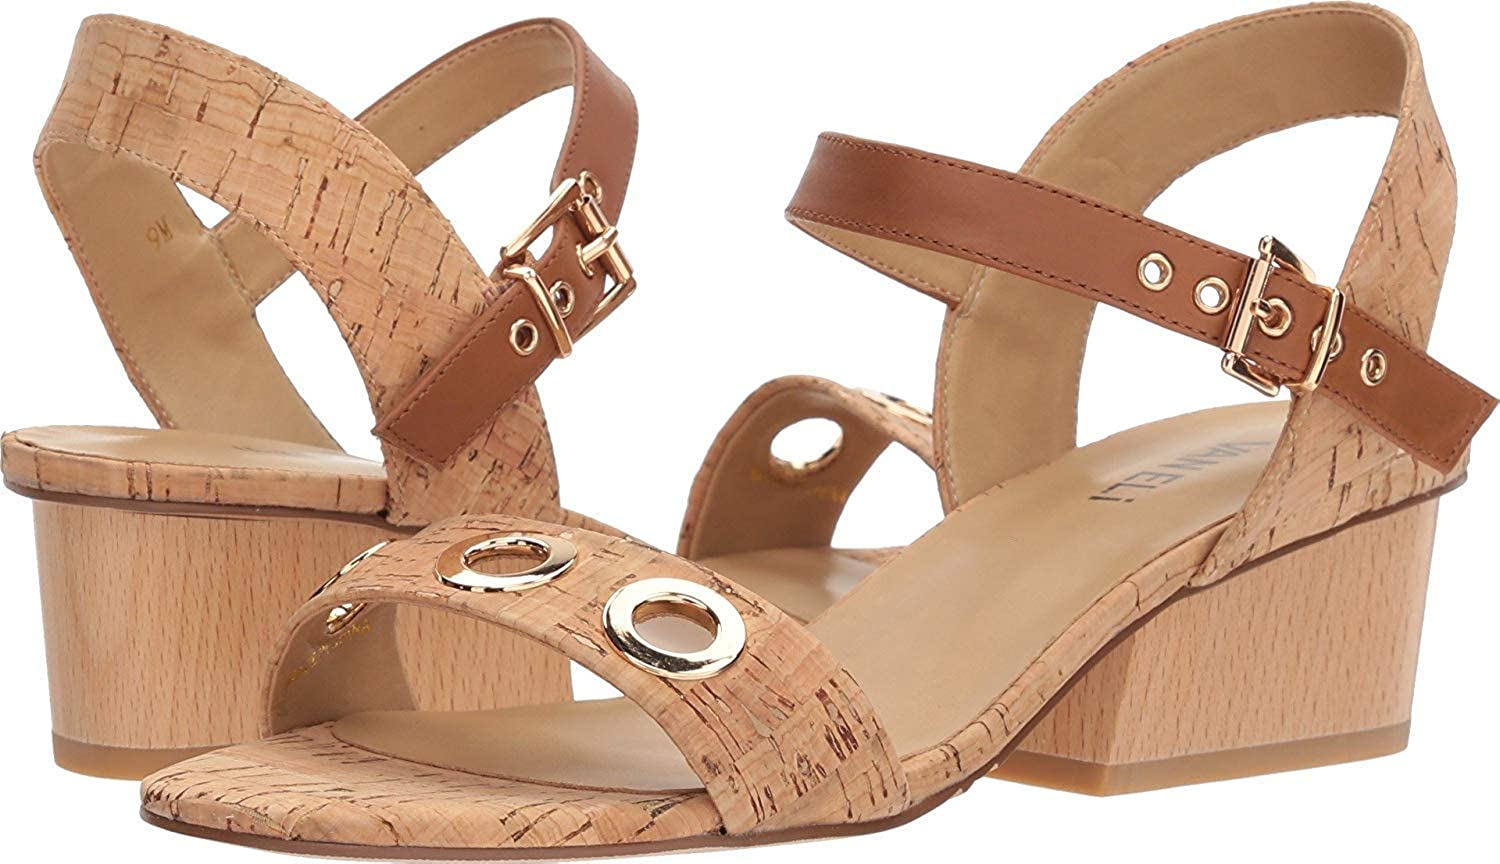 feab08ceae55d Vaneli Womens Chaddy Open Toe Casual Slingback Sandals